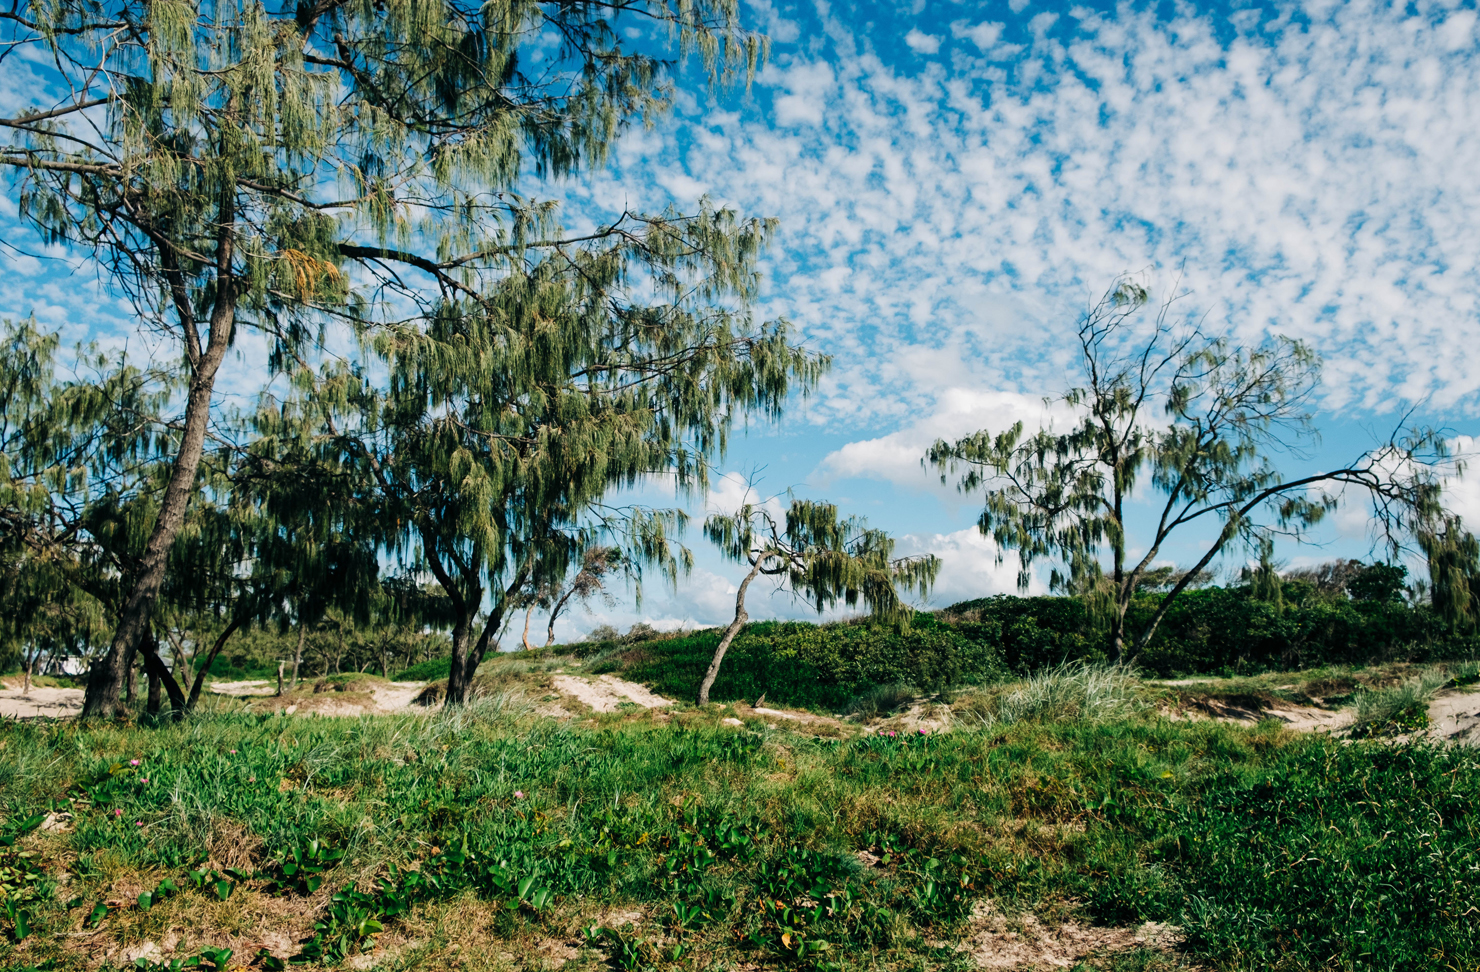 A landscape shot of the campground at Inskip Point in Queensland.